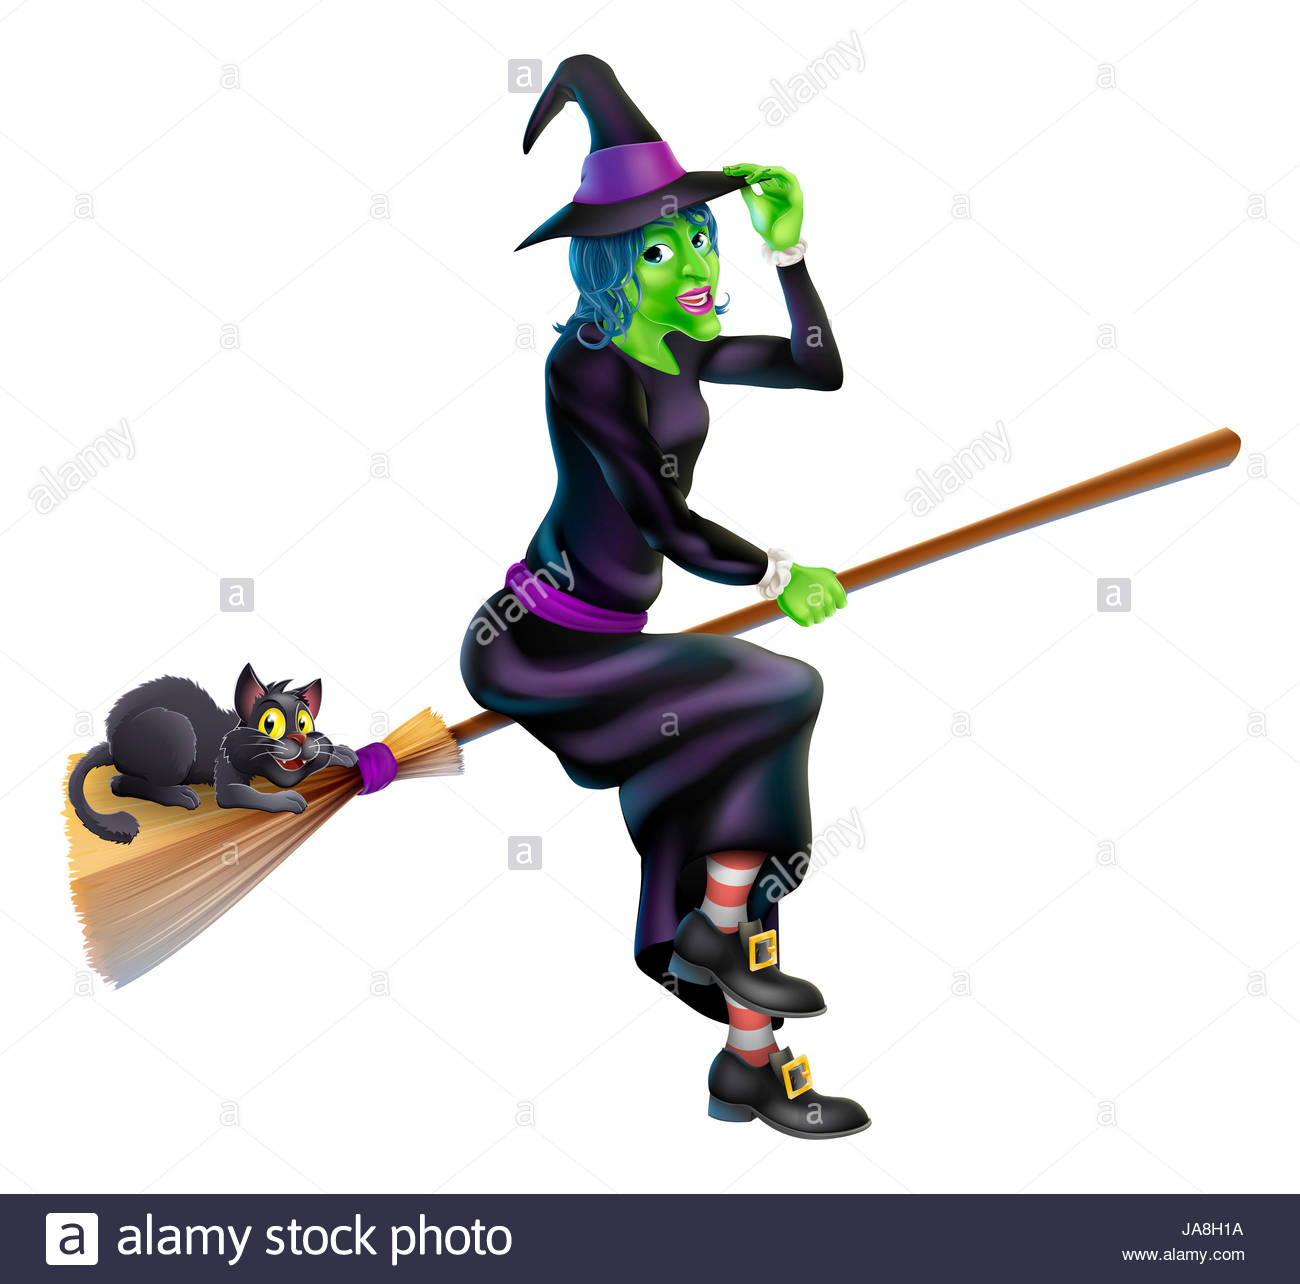 1300x1284 A Friendly Cartoon Halloween Witch Flying On Her Broom Stick